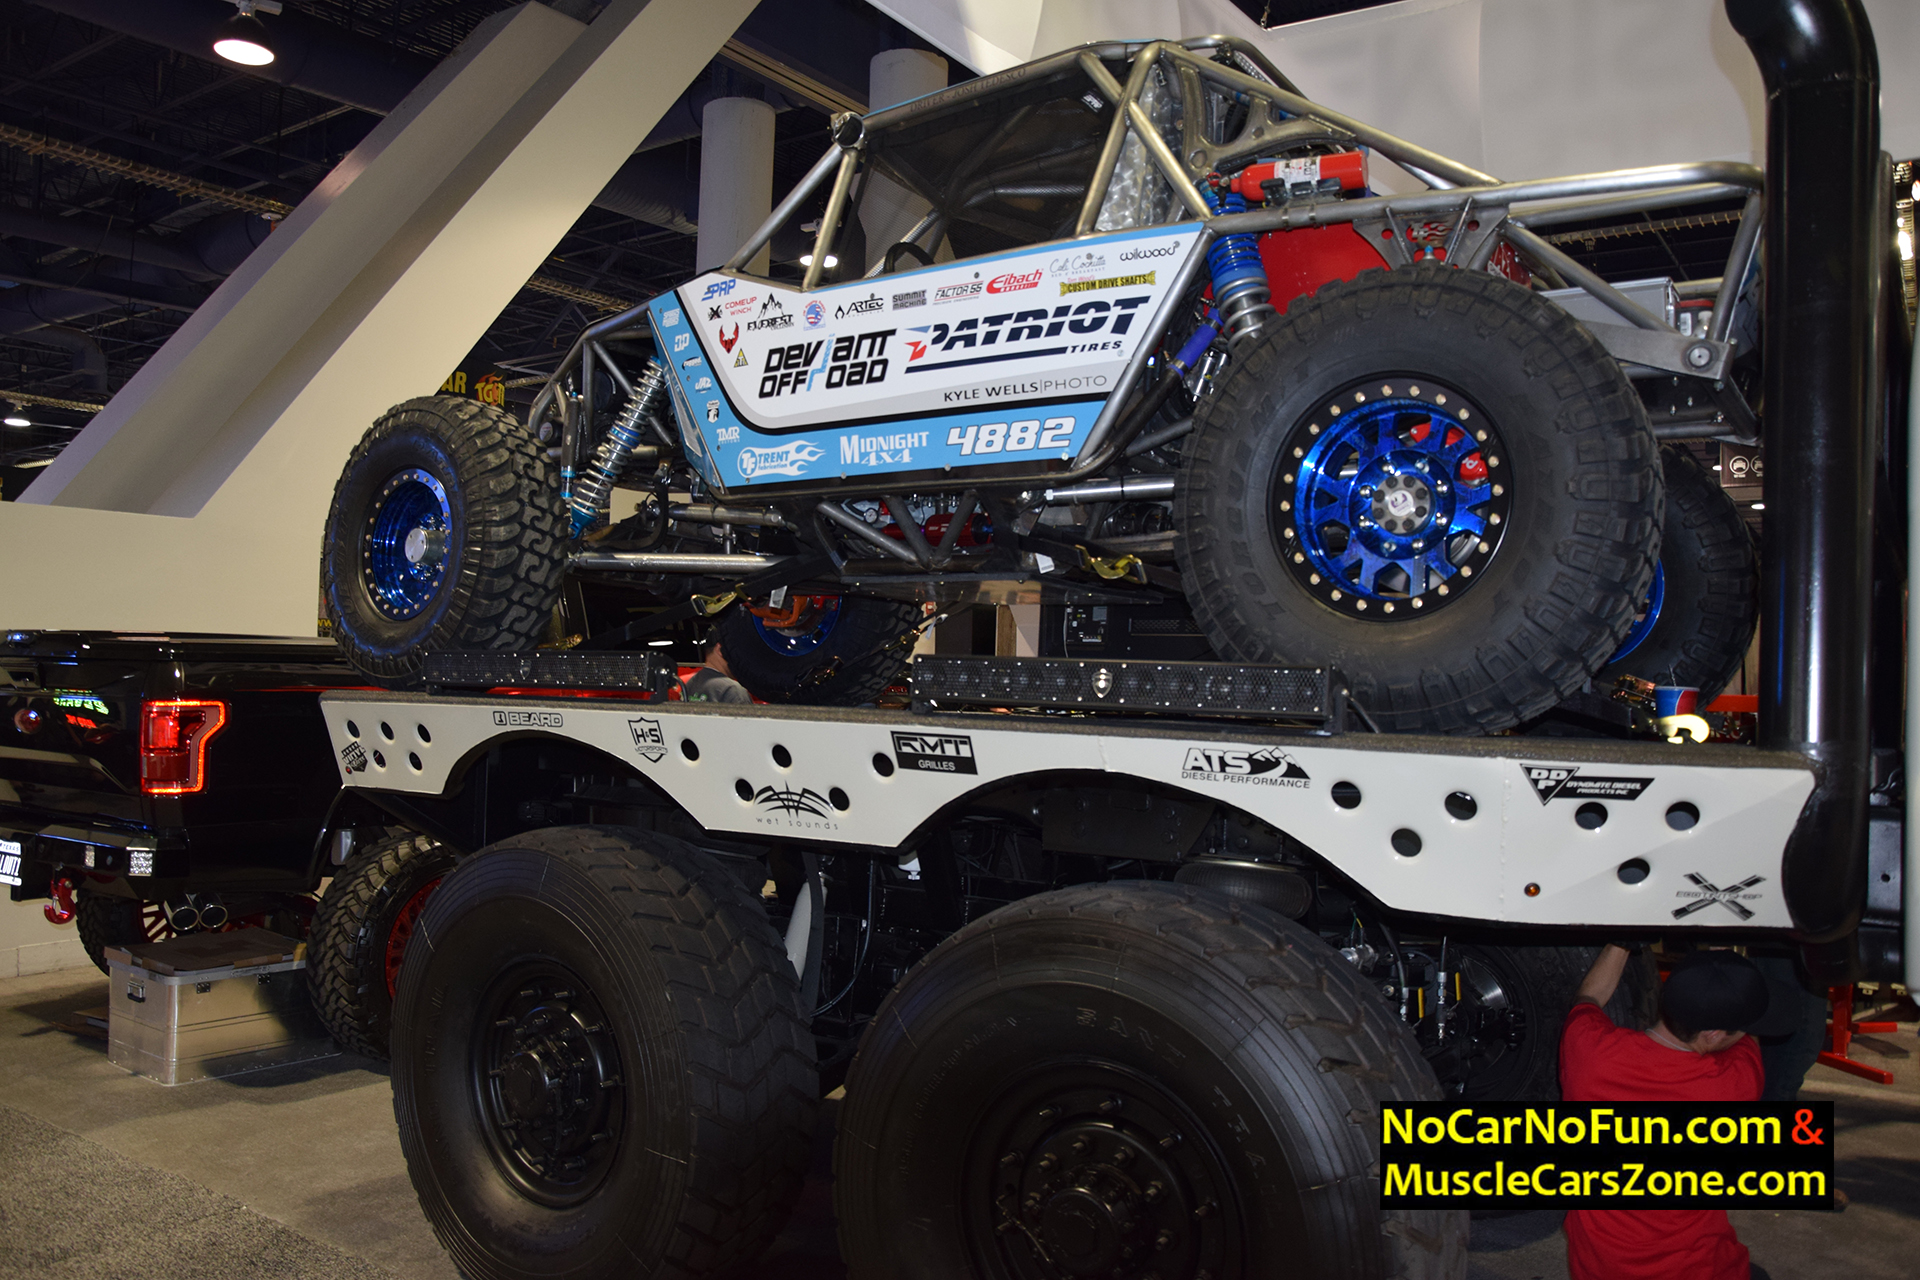 6 Door Ford Truck >> Huge 6 Door Ford Truck By Dieselsellerz With Buggy On Top 2015